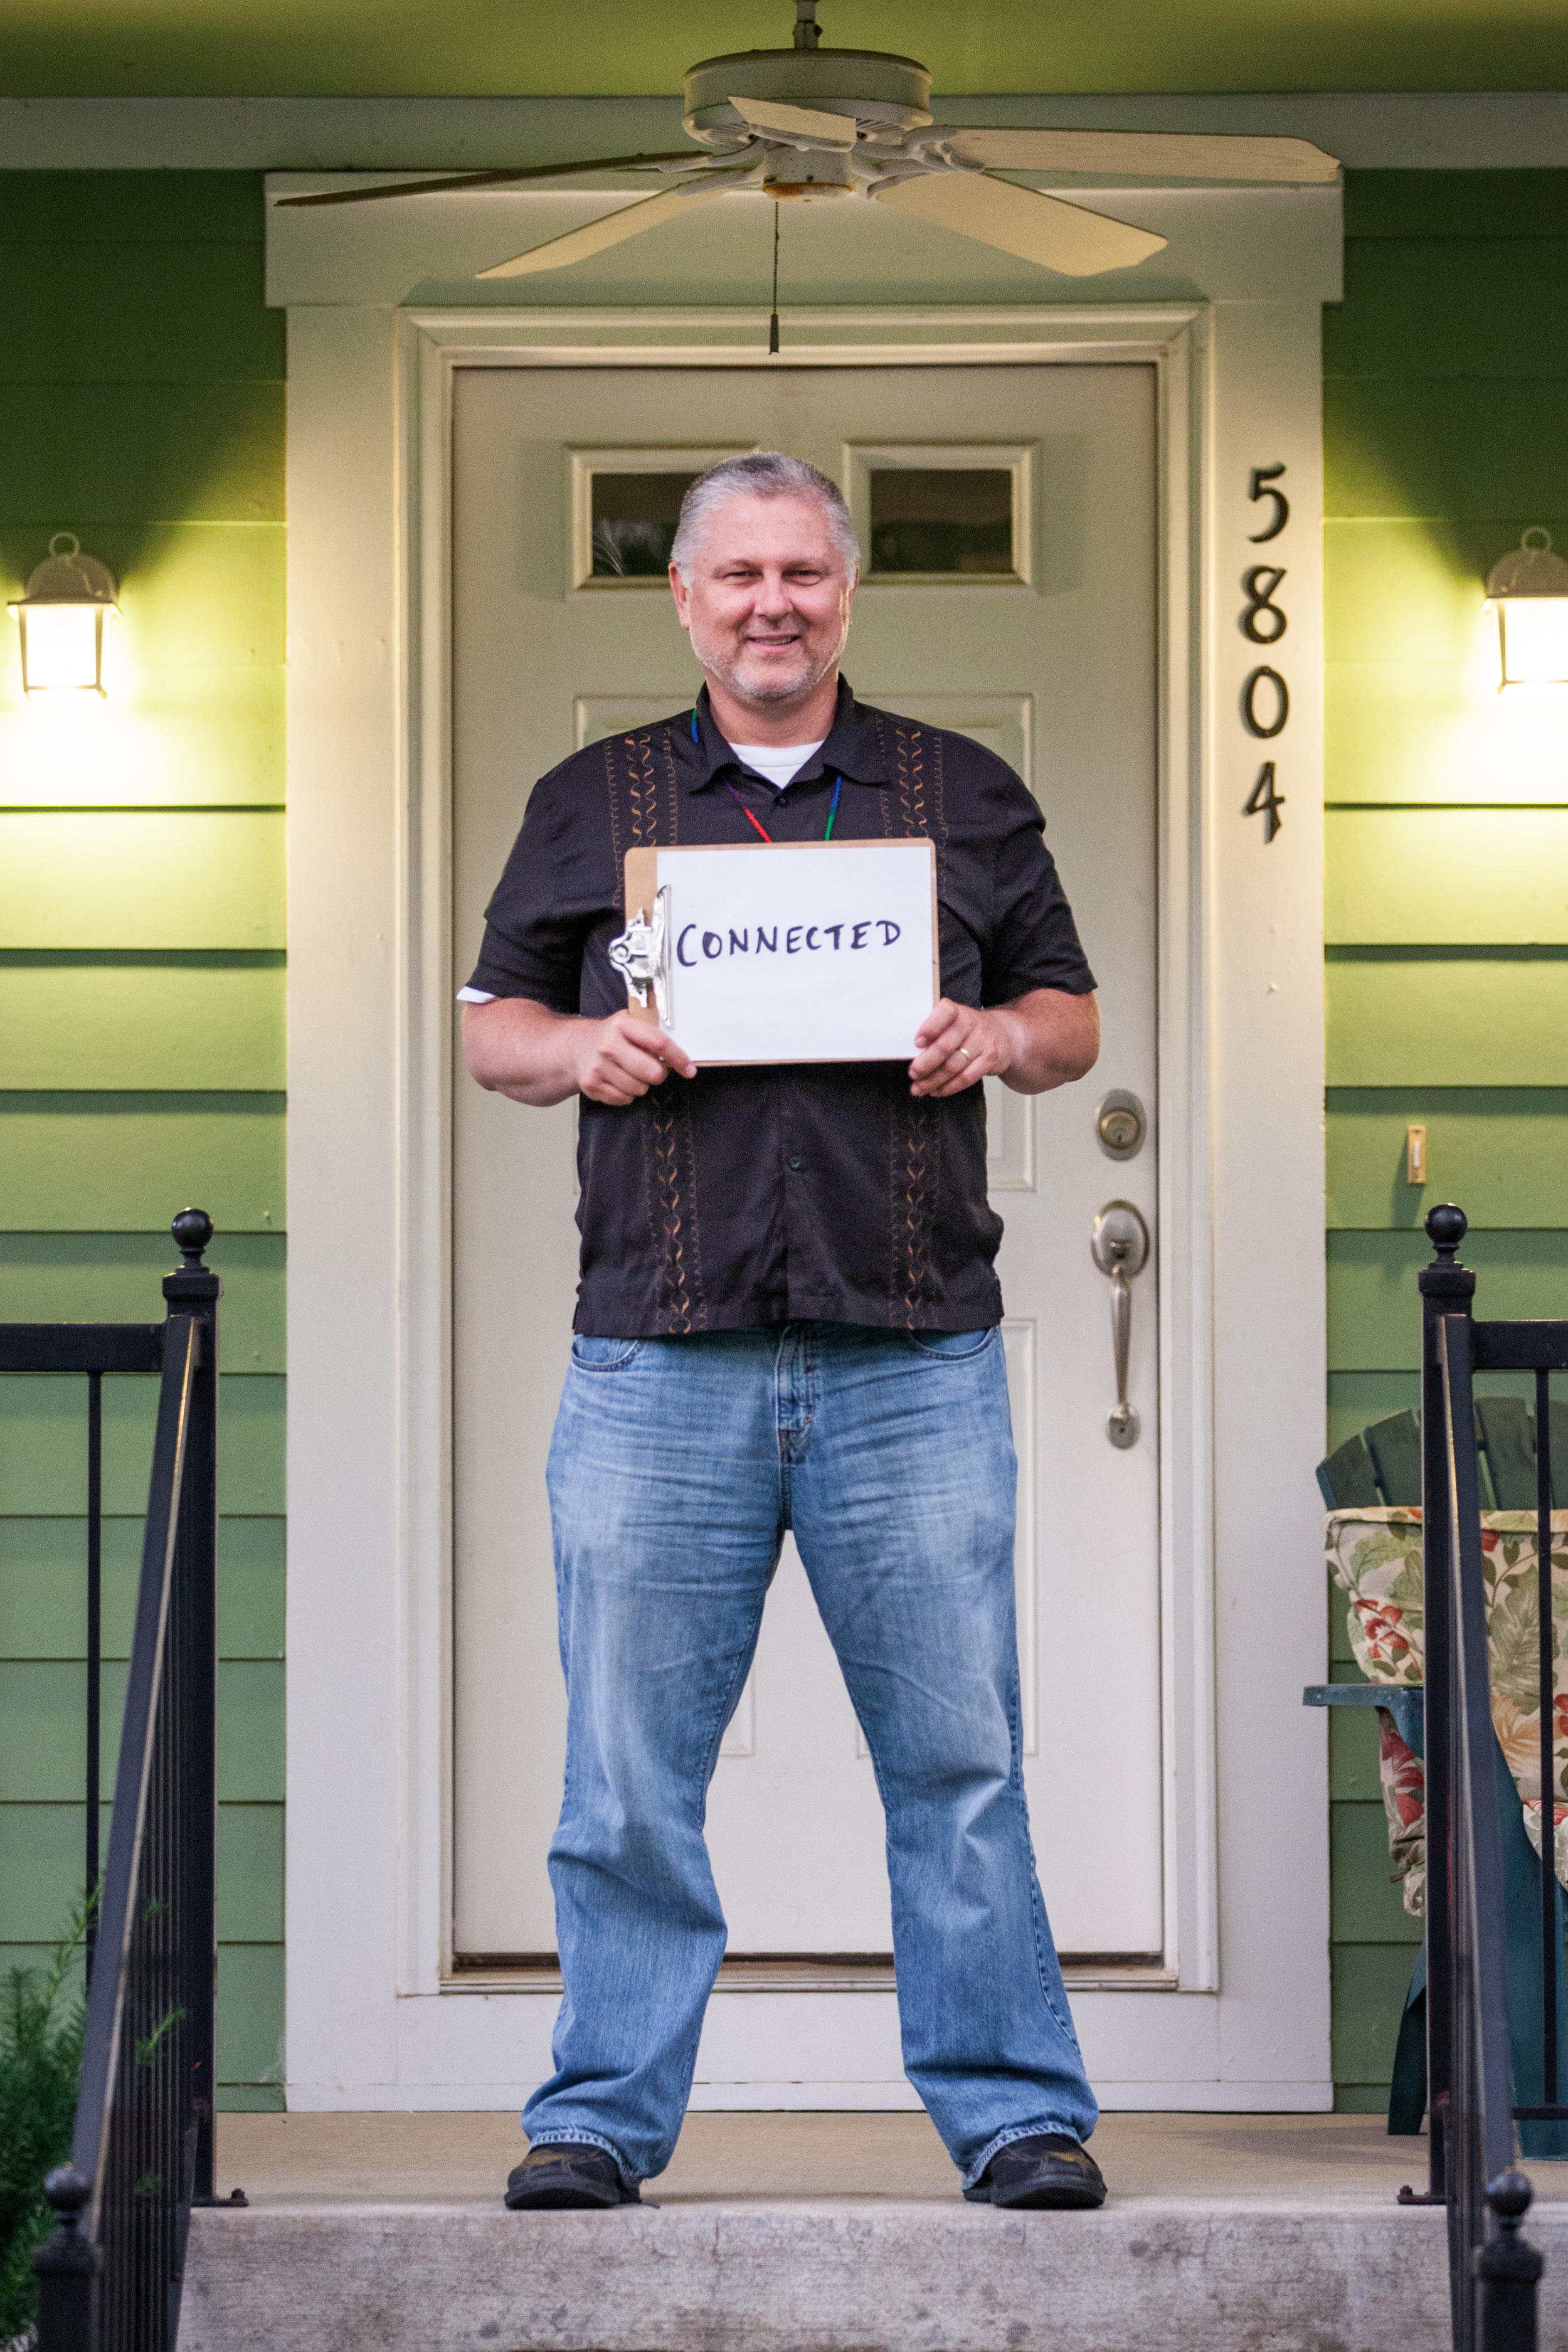 Man holding a  sign that says connected.